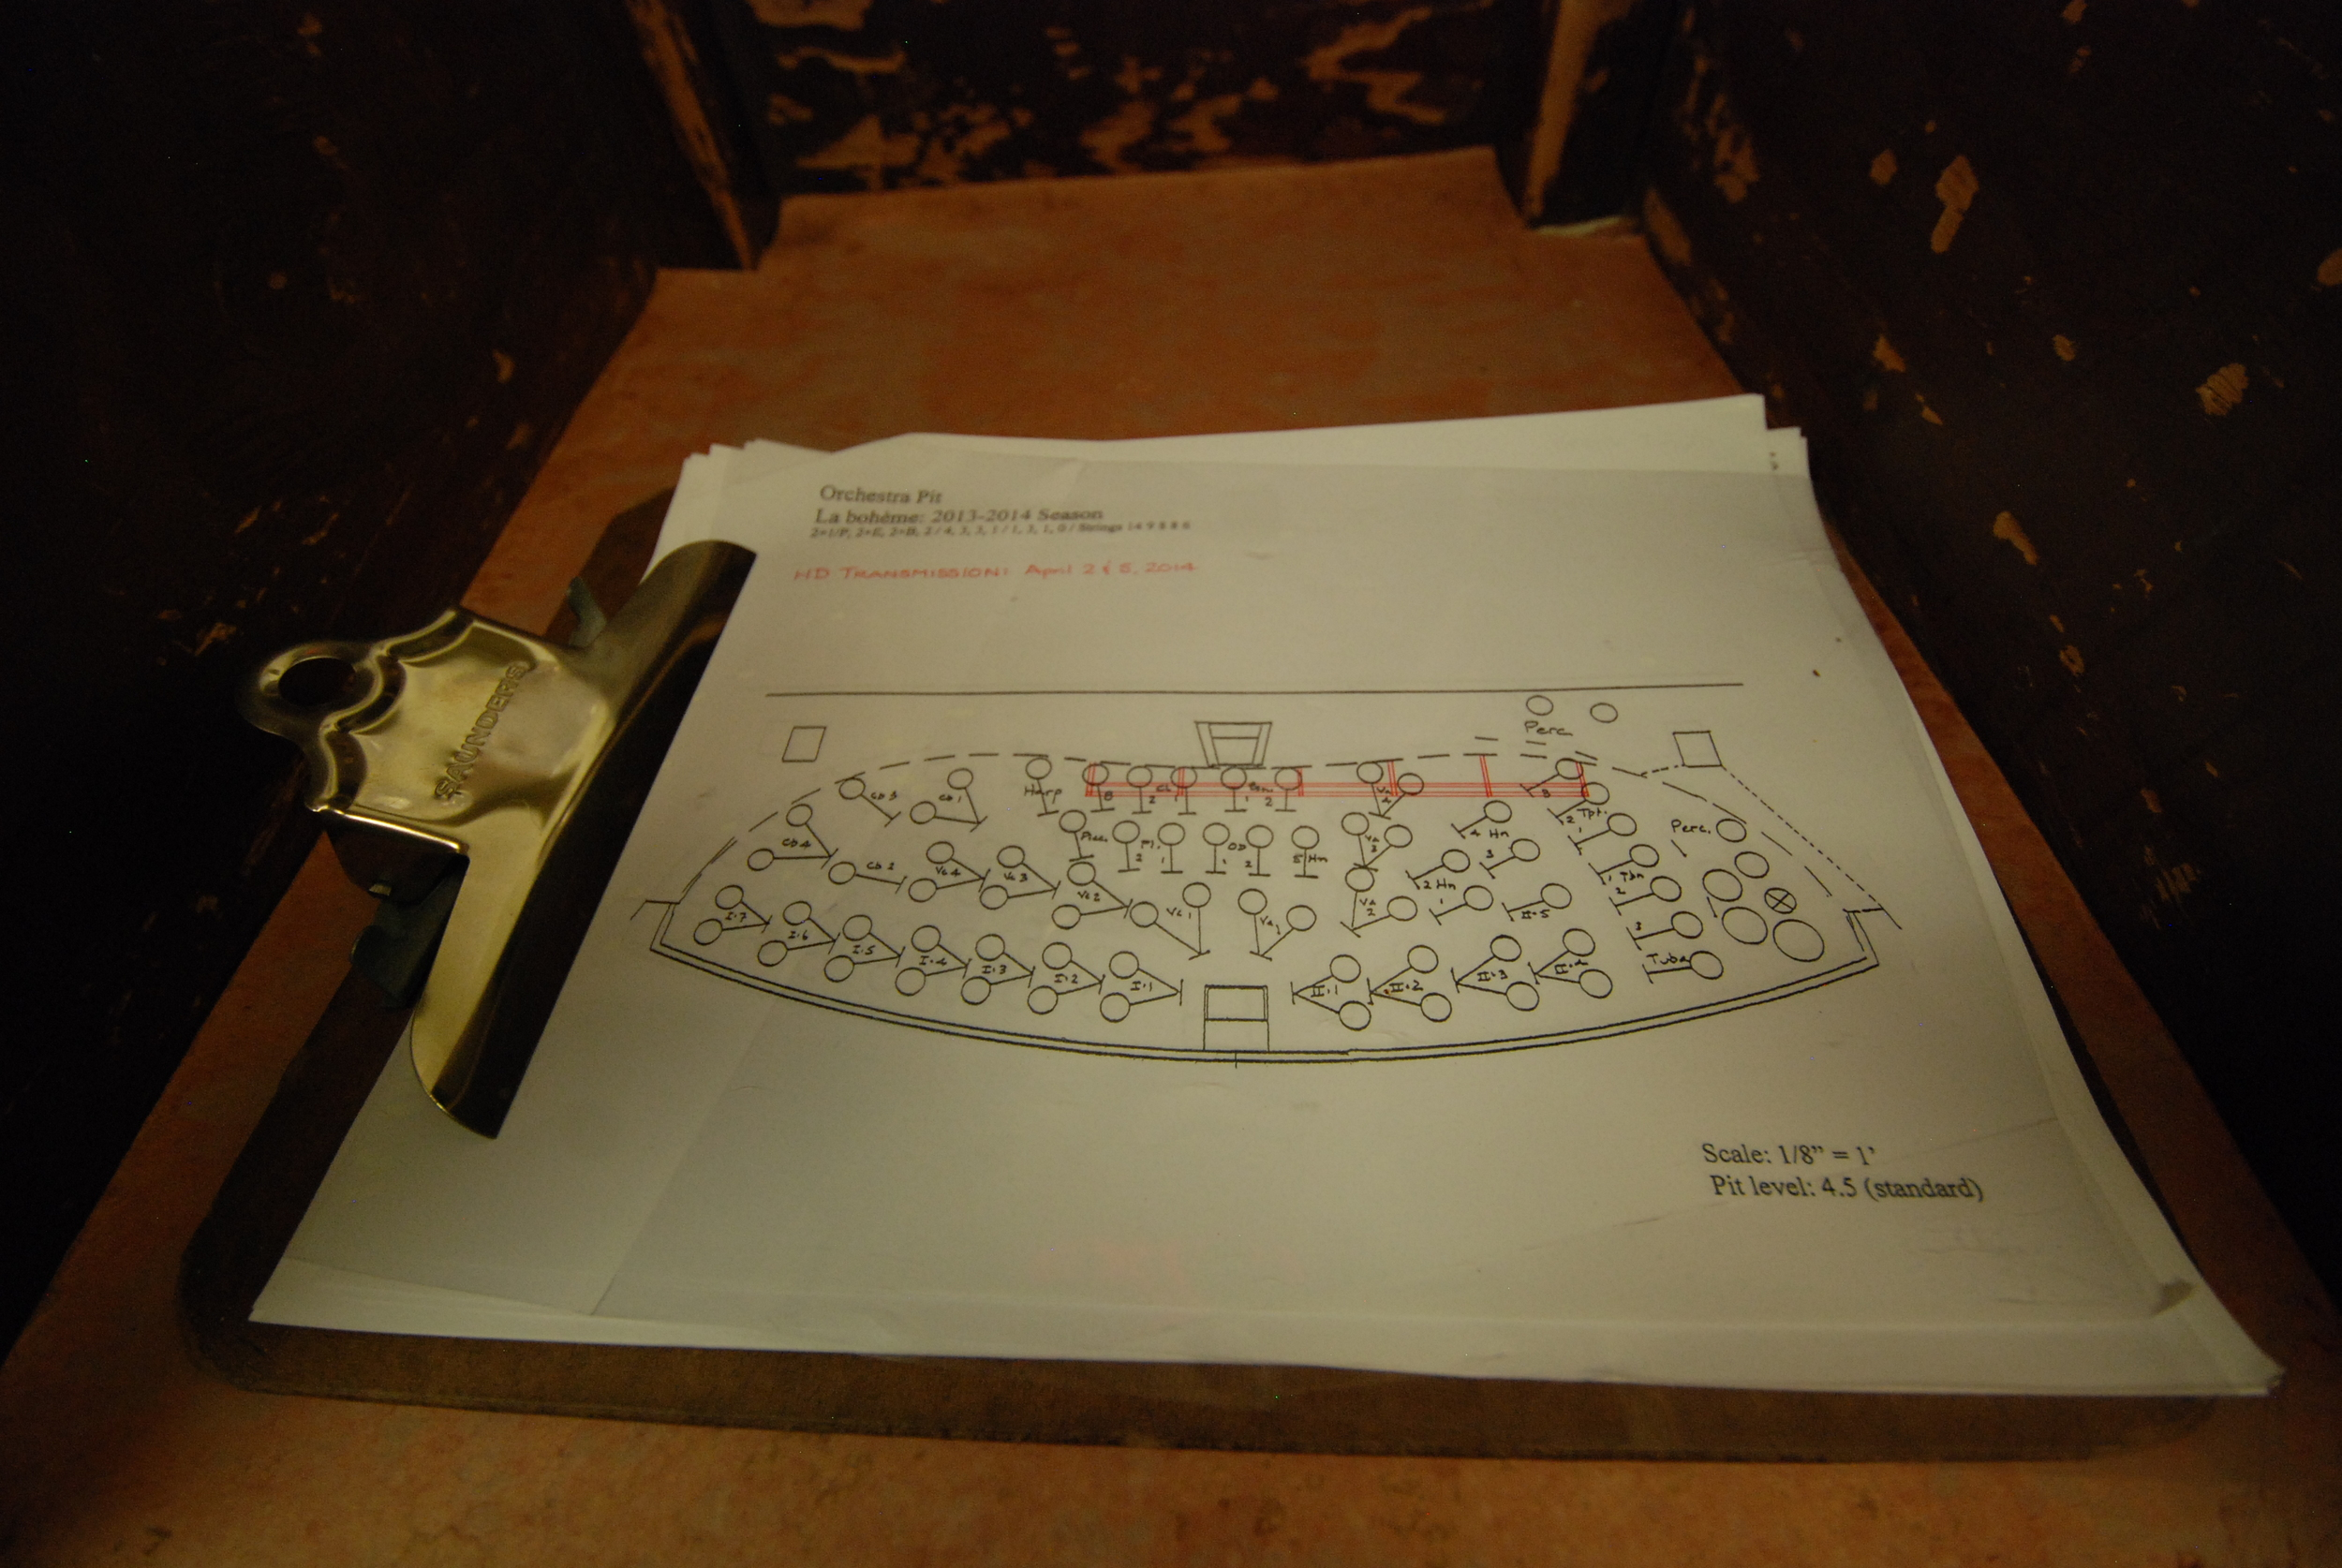 A drawn-to-scale graph of the pit setup for Puccini's  La Bohème